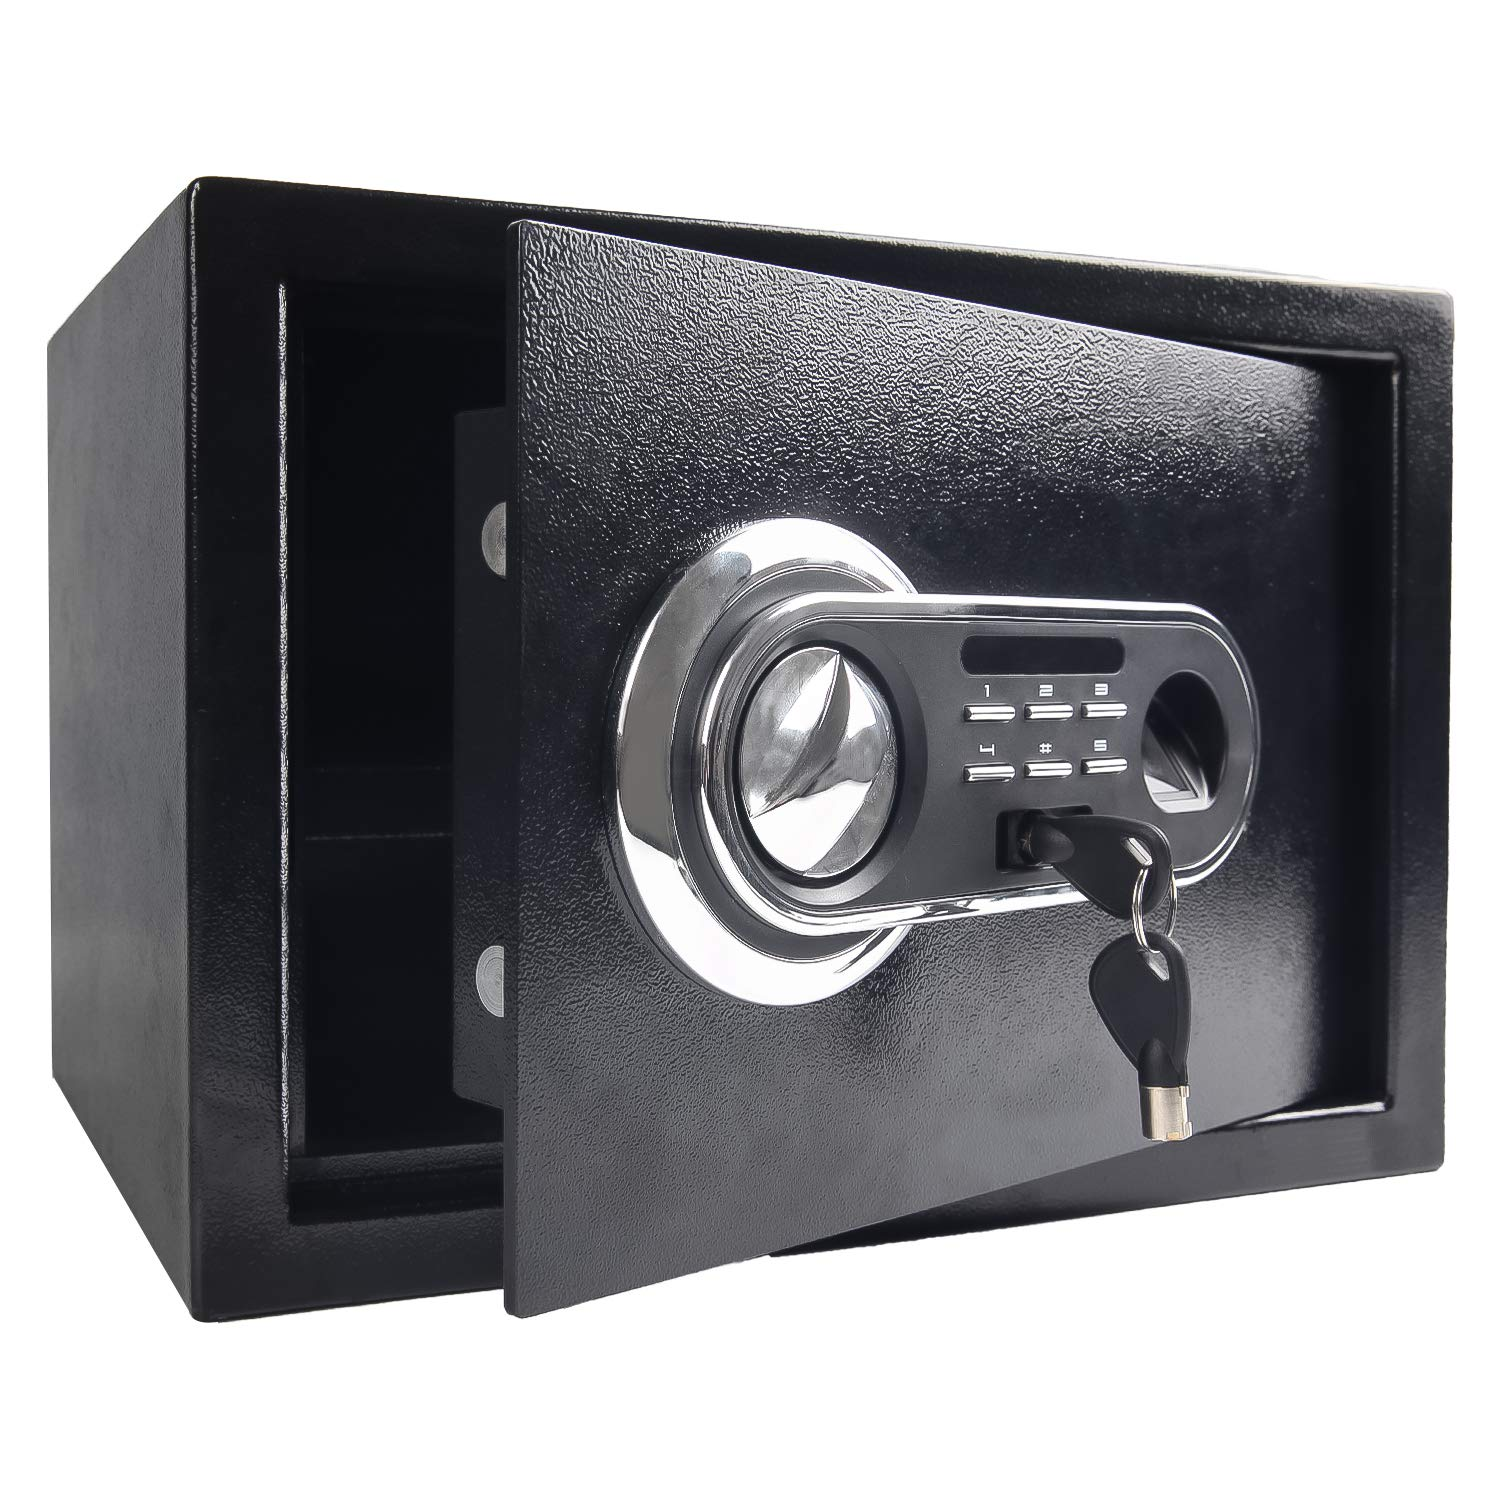 Security Safe Box, Digital and Fingerprint Lock with Key Lock, 13.8 x 9.8 x 10 Inches, Home Safe for Storing Jewelry Gun Cash Use Storage, Black